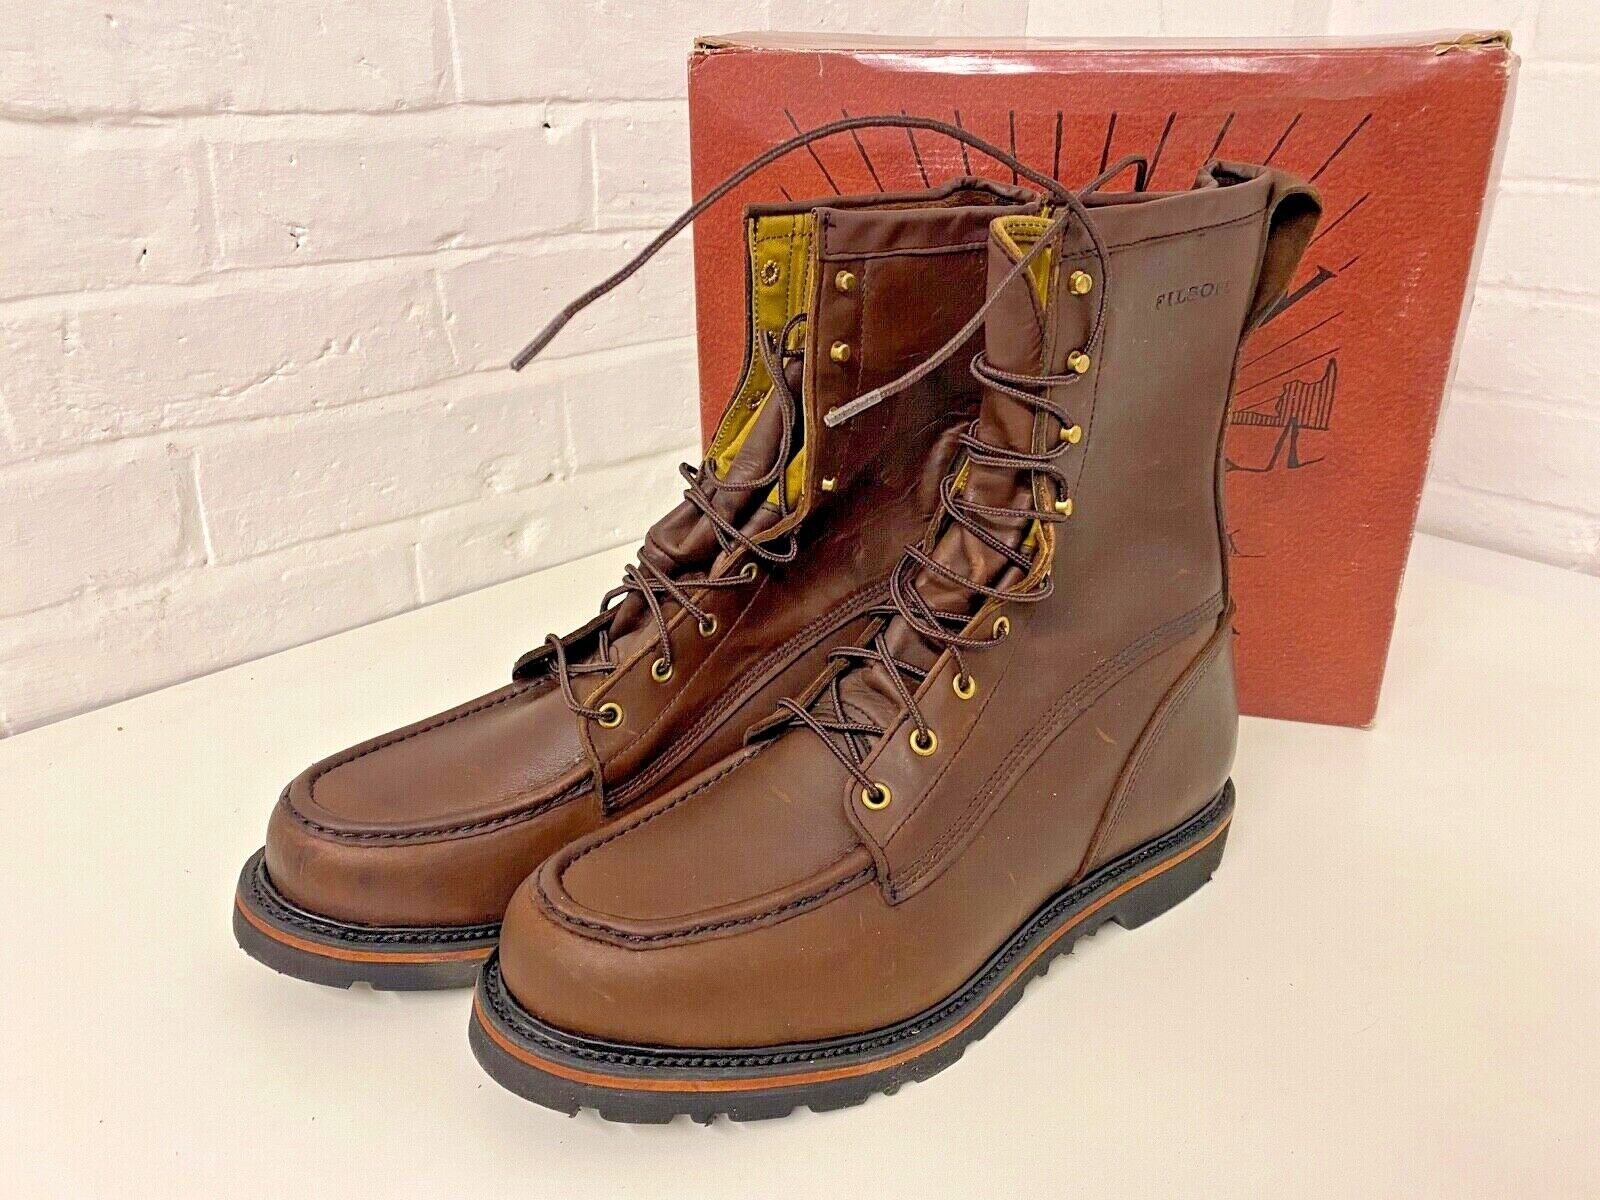 FILSON Uplander Boots UK 12 New & Boxed - New old stock - Out of Production